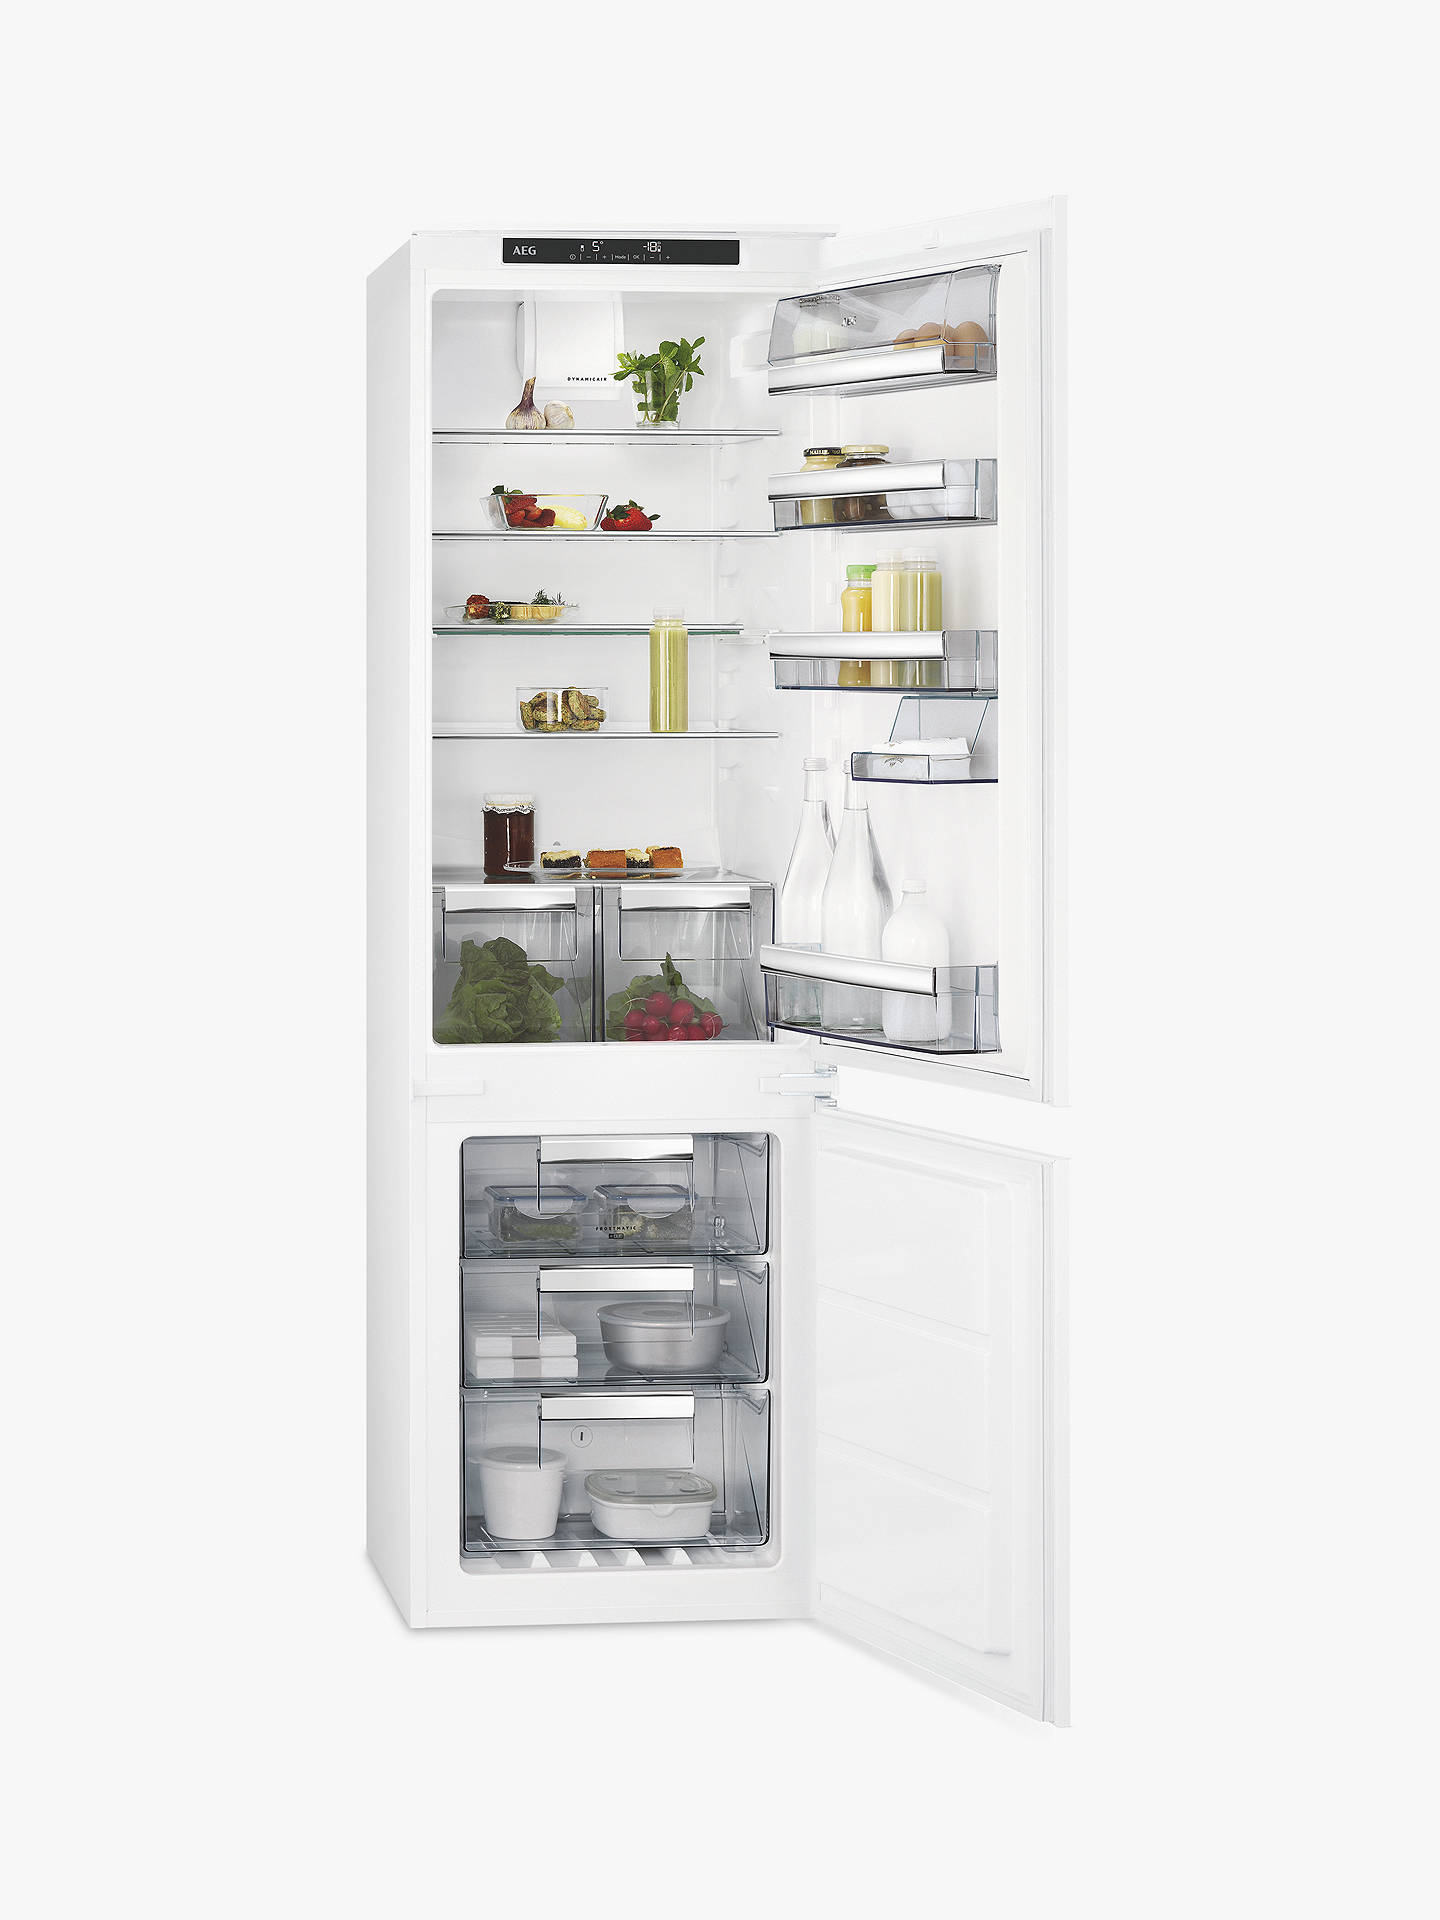 BuyAEG SCE8181VTS Integrated Fridge Freezer, A+ Energy Rating, 54cm Wide, White Online at johnlewis.com